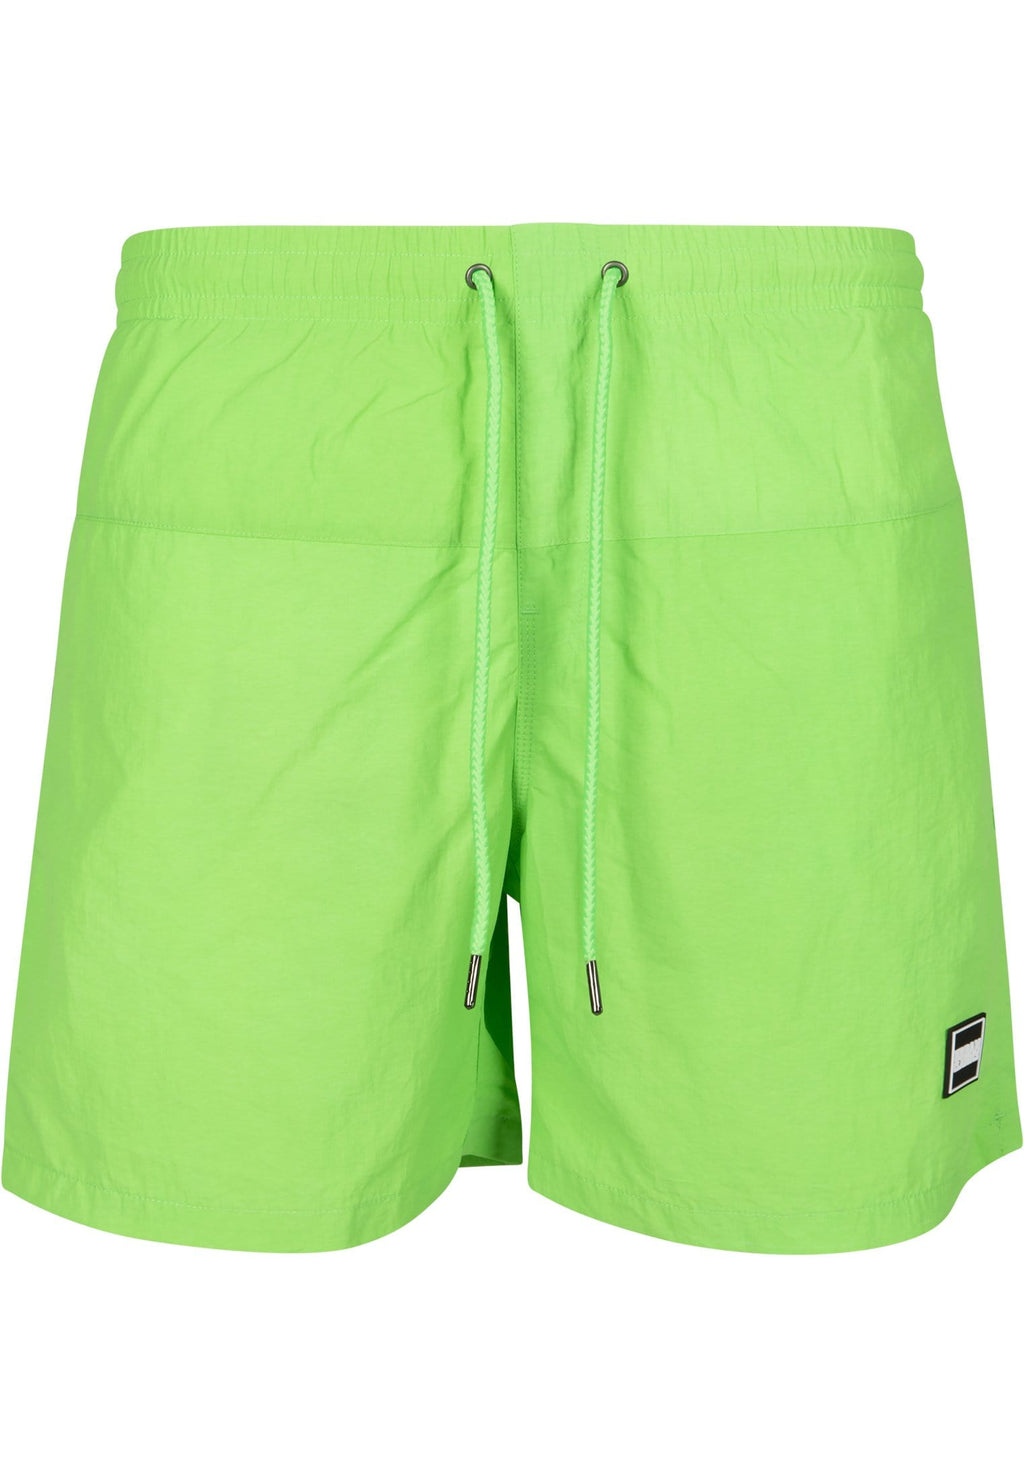 Block Swim Shorts - Neongrøn